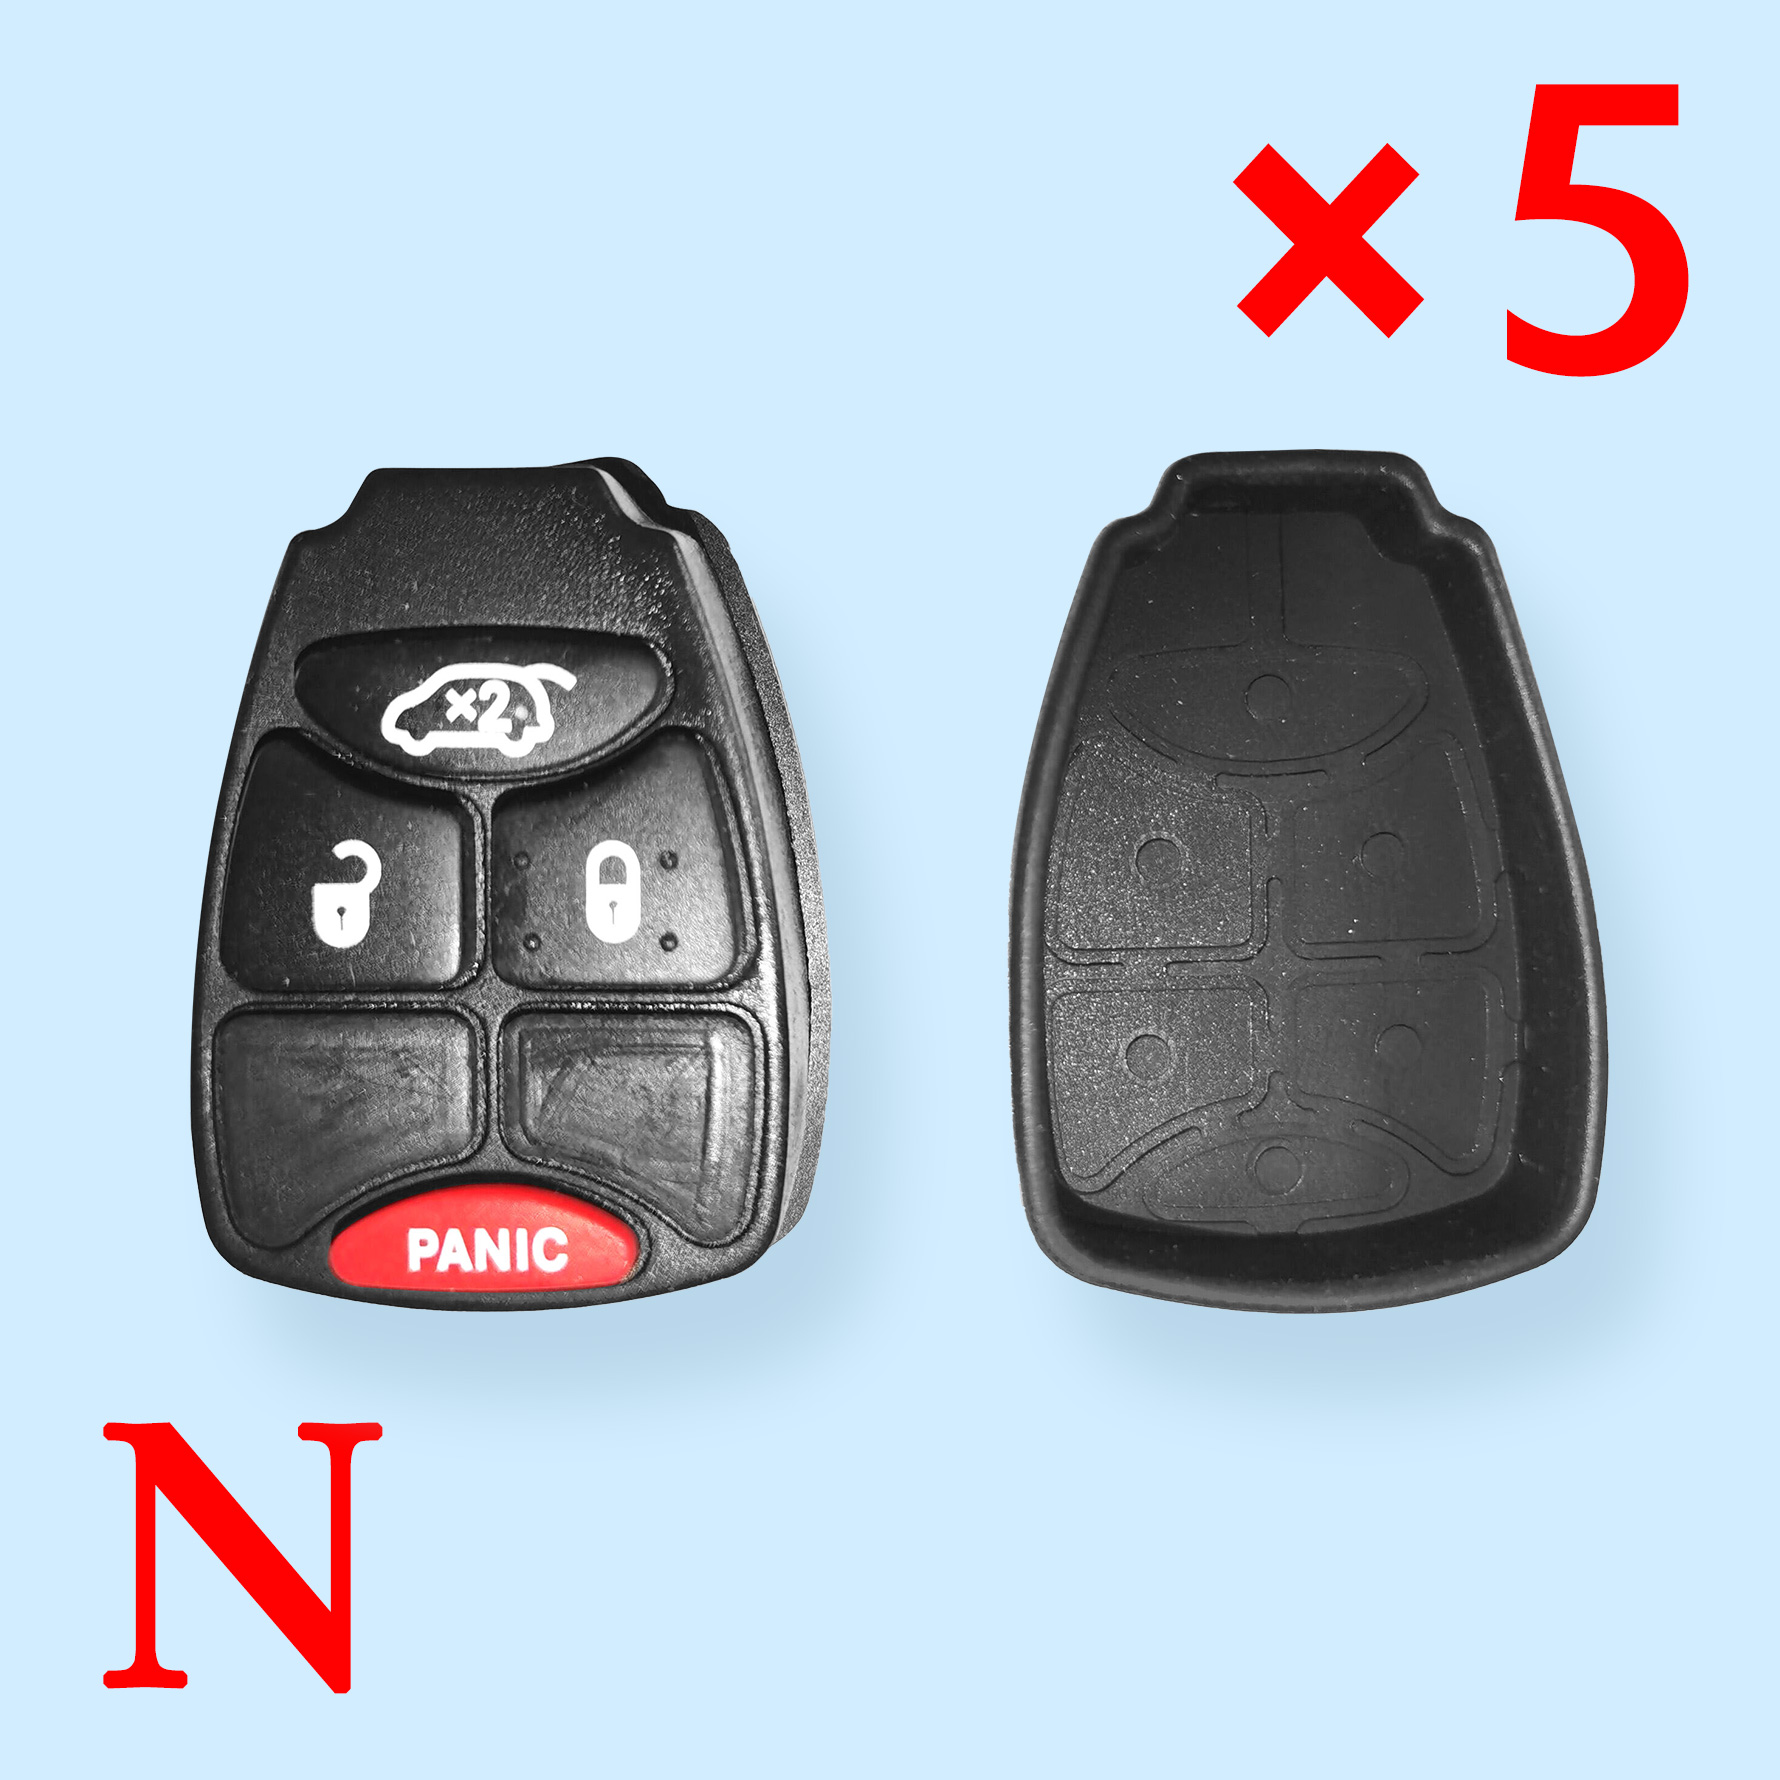 3 + 1 Buttons Rubber Pad for Chrysler Jeep Dodge - Pack of 5